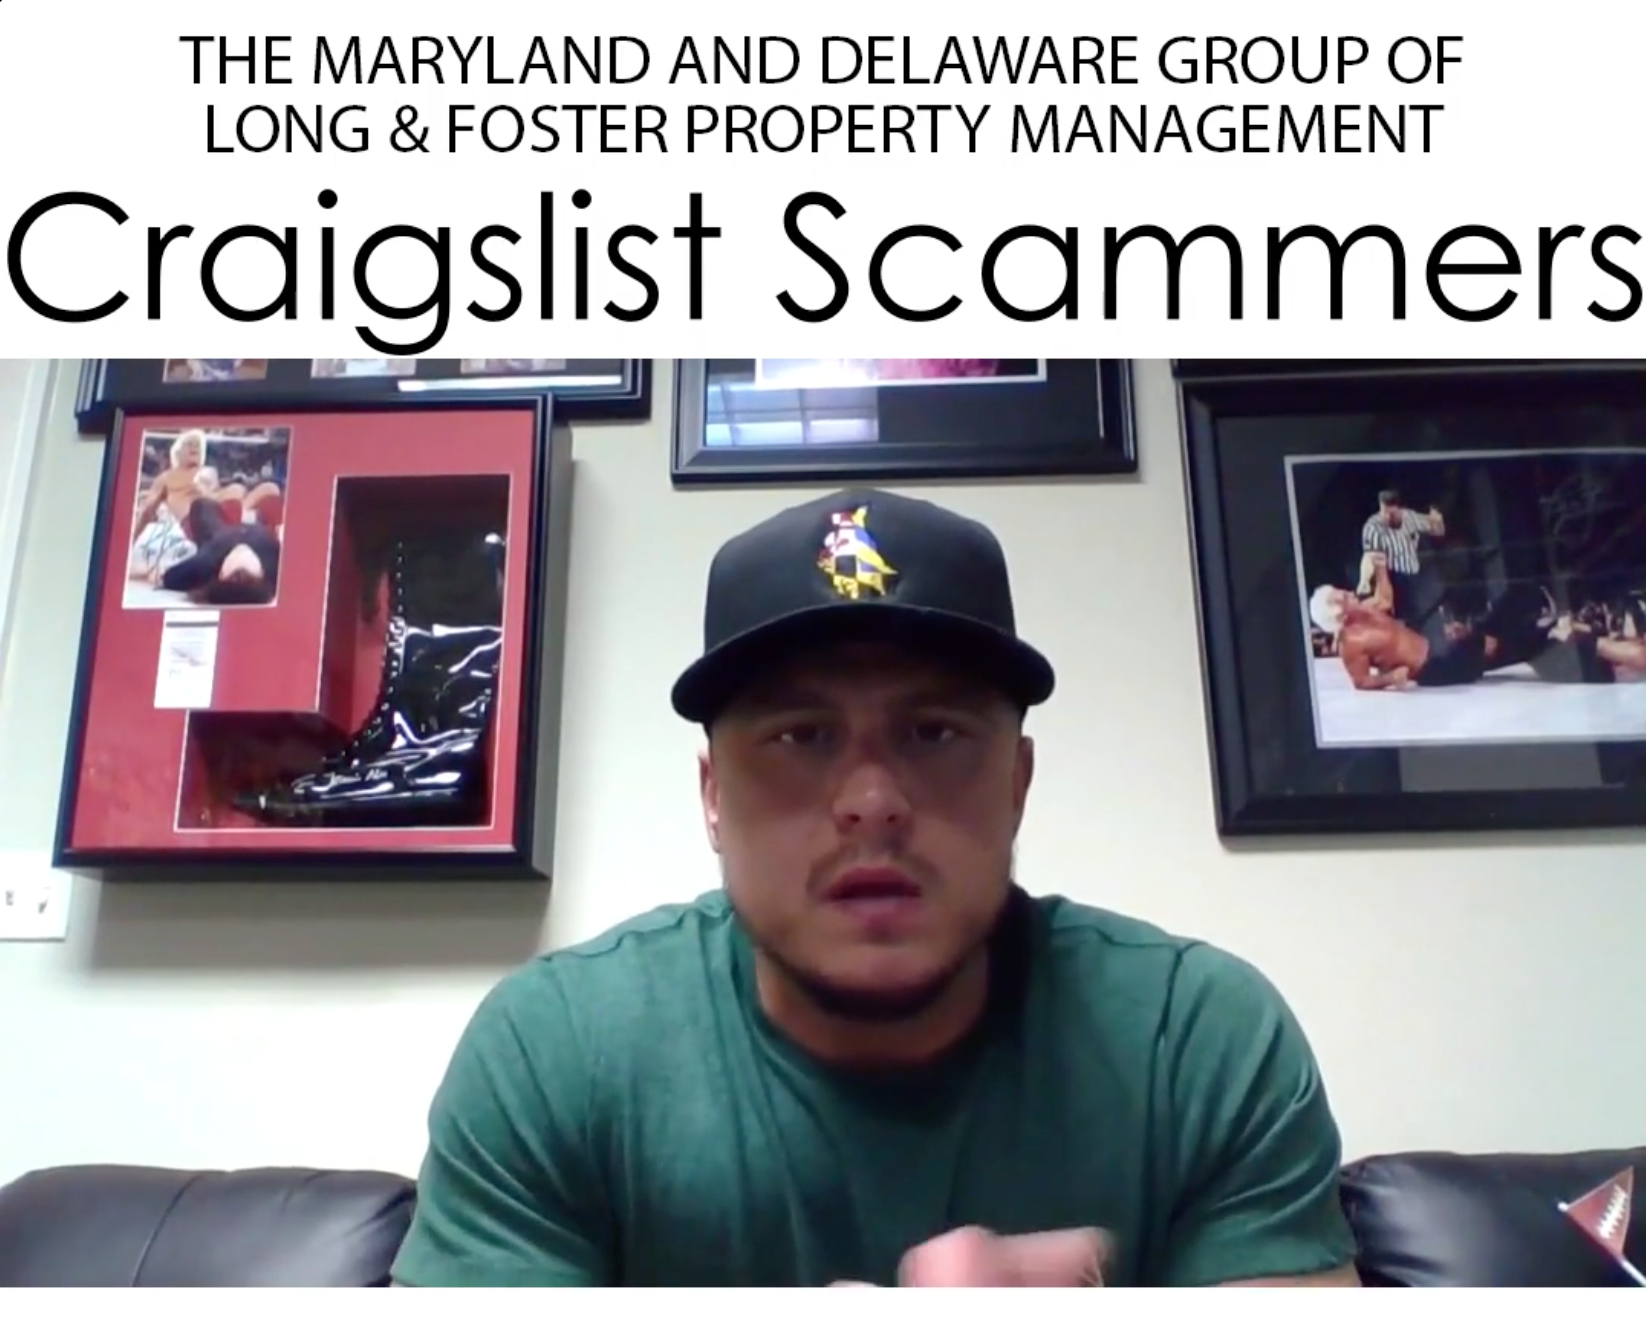 Craigslist Scammers All of craigslist delaware, search the entire state of delaware which covers a total of 1,982 sq mi. salisbury property management